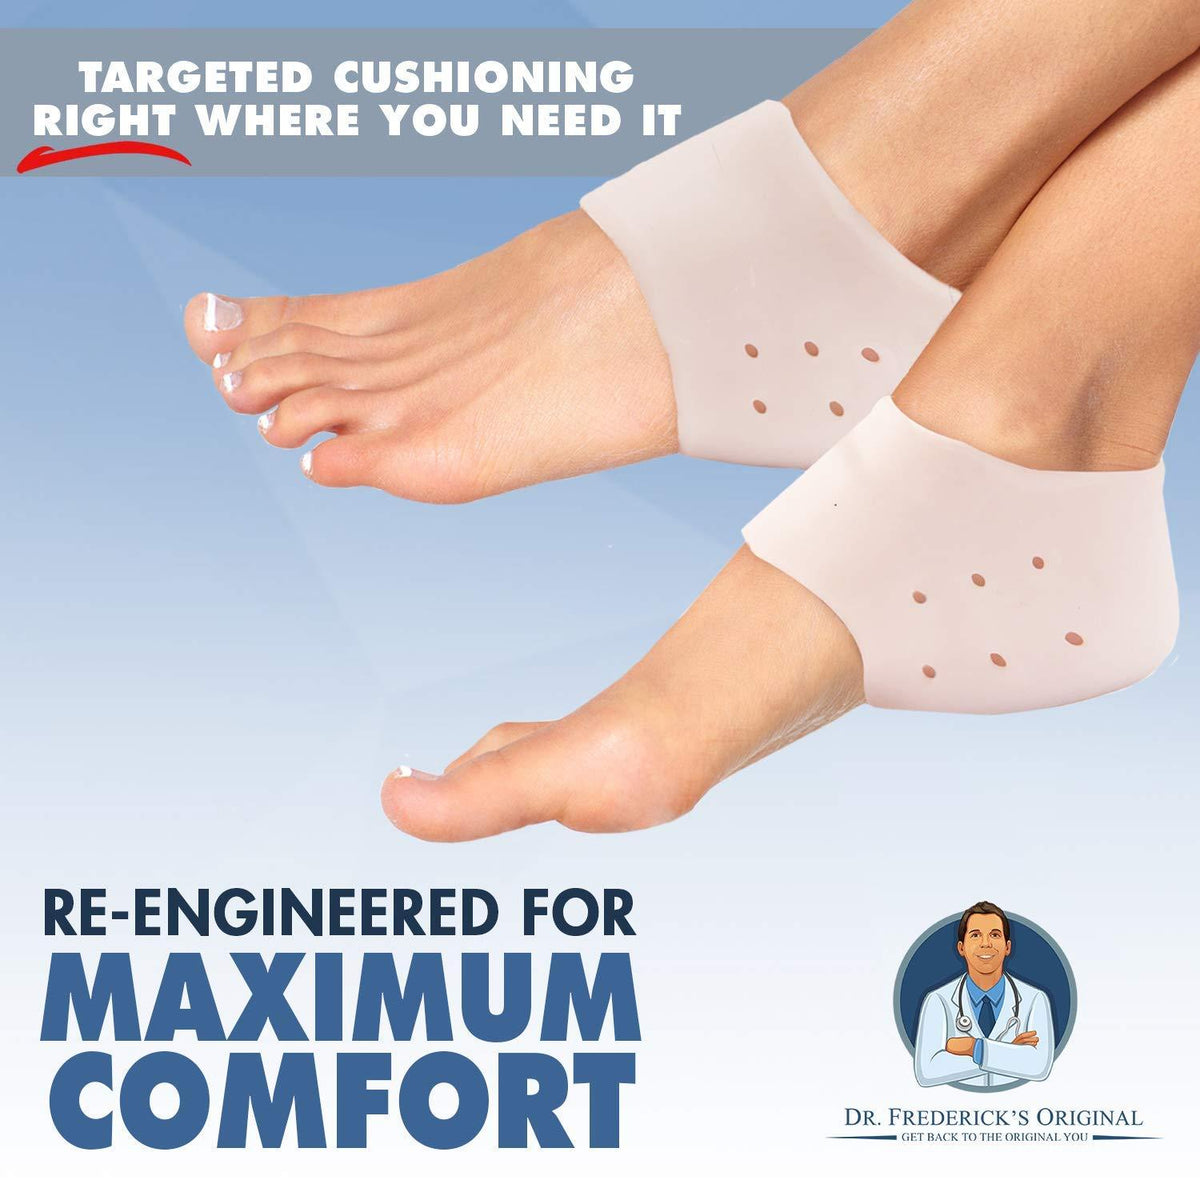 Dr. Frederick's Original Gel Heel Protectors -- 2 Pieces - for Heel Pain, Cracked Heels, Heel Spurs, and Plantar Fasciitis Foot Pain Dr. Frederick's Original